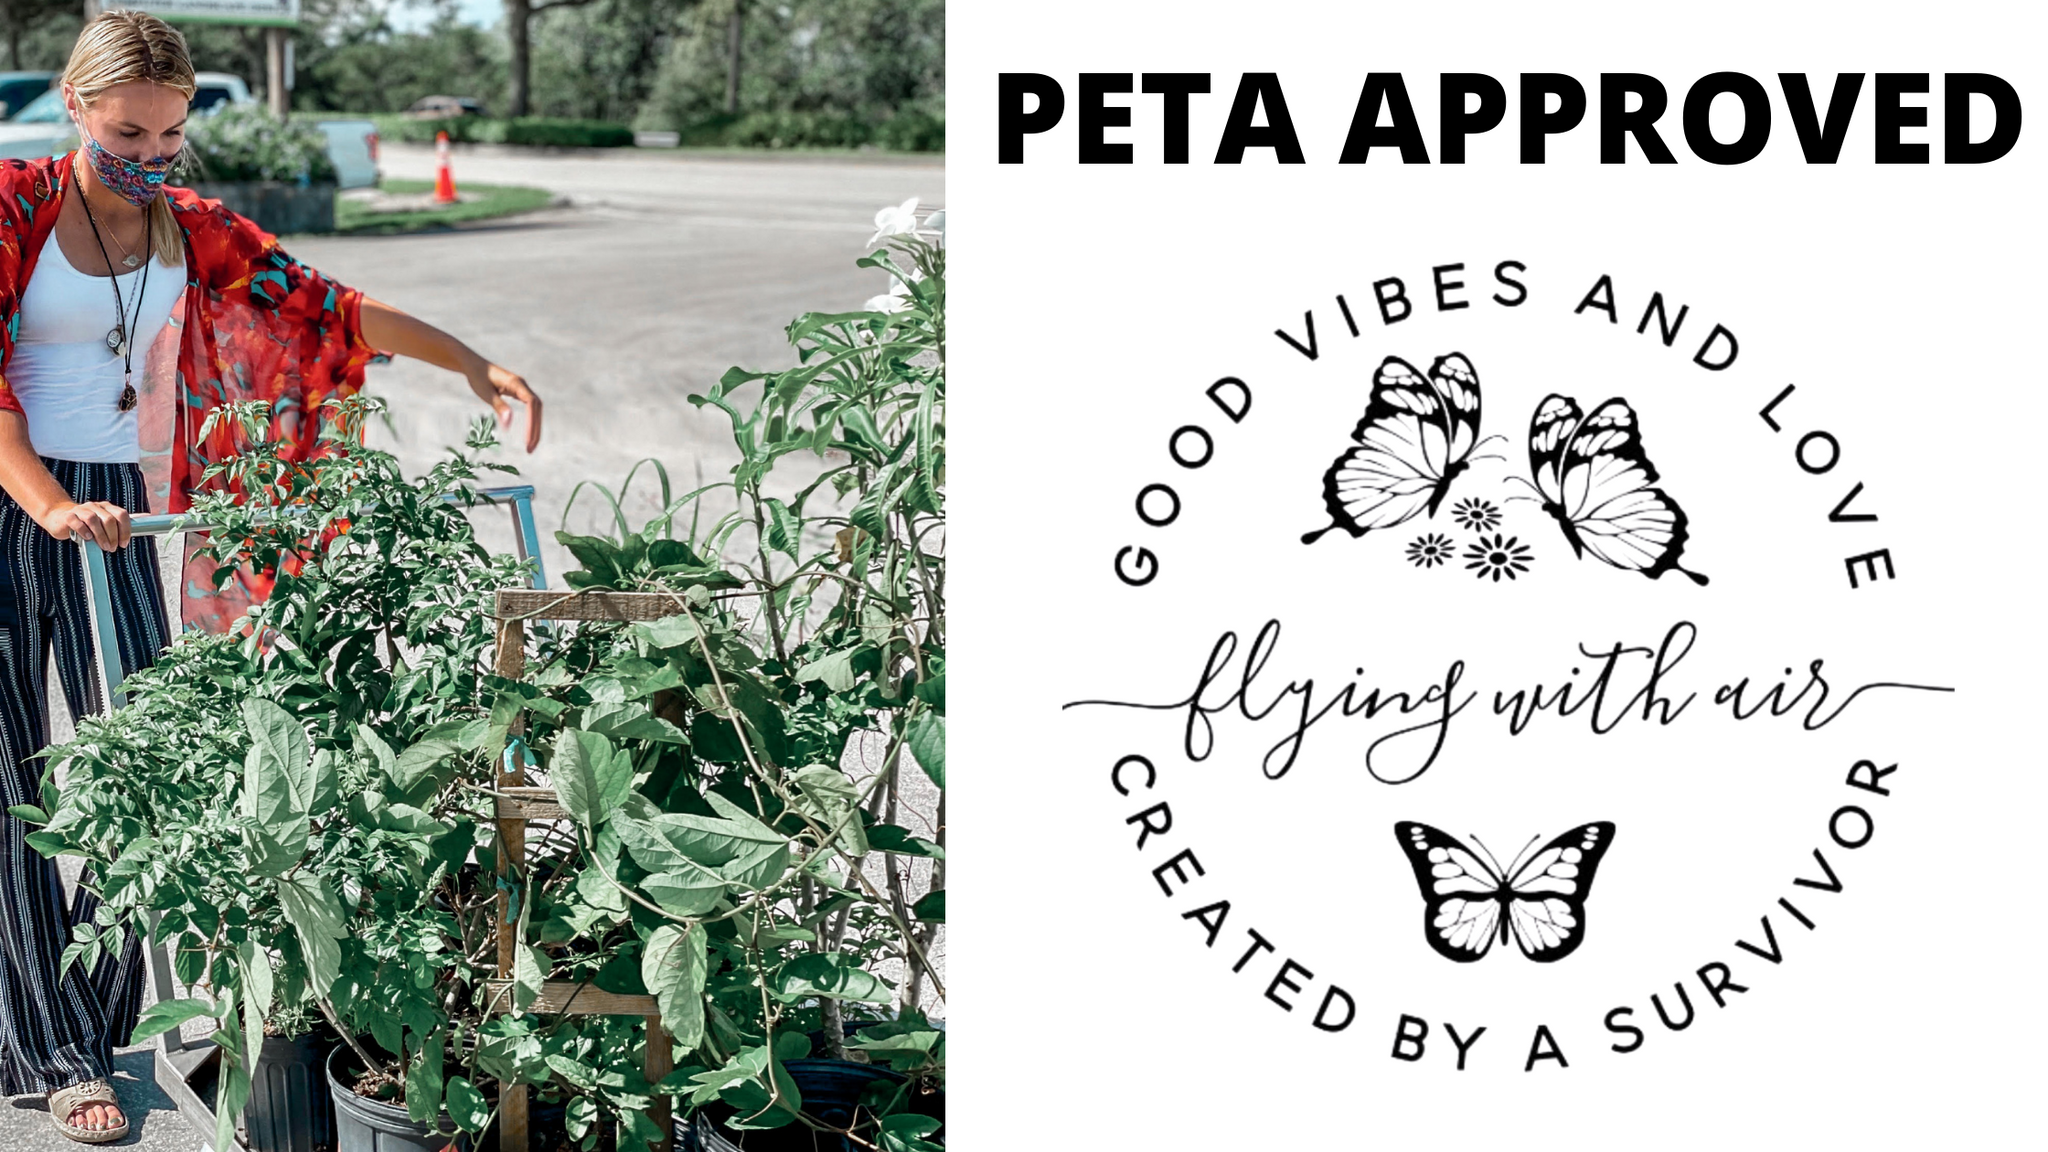 peta approved miami business shop flying with air apothecary